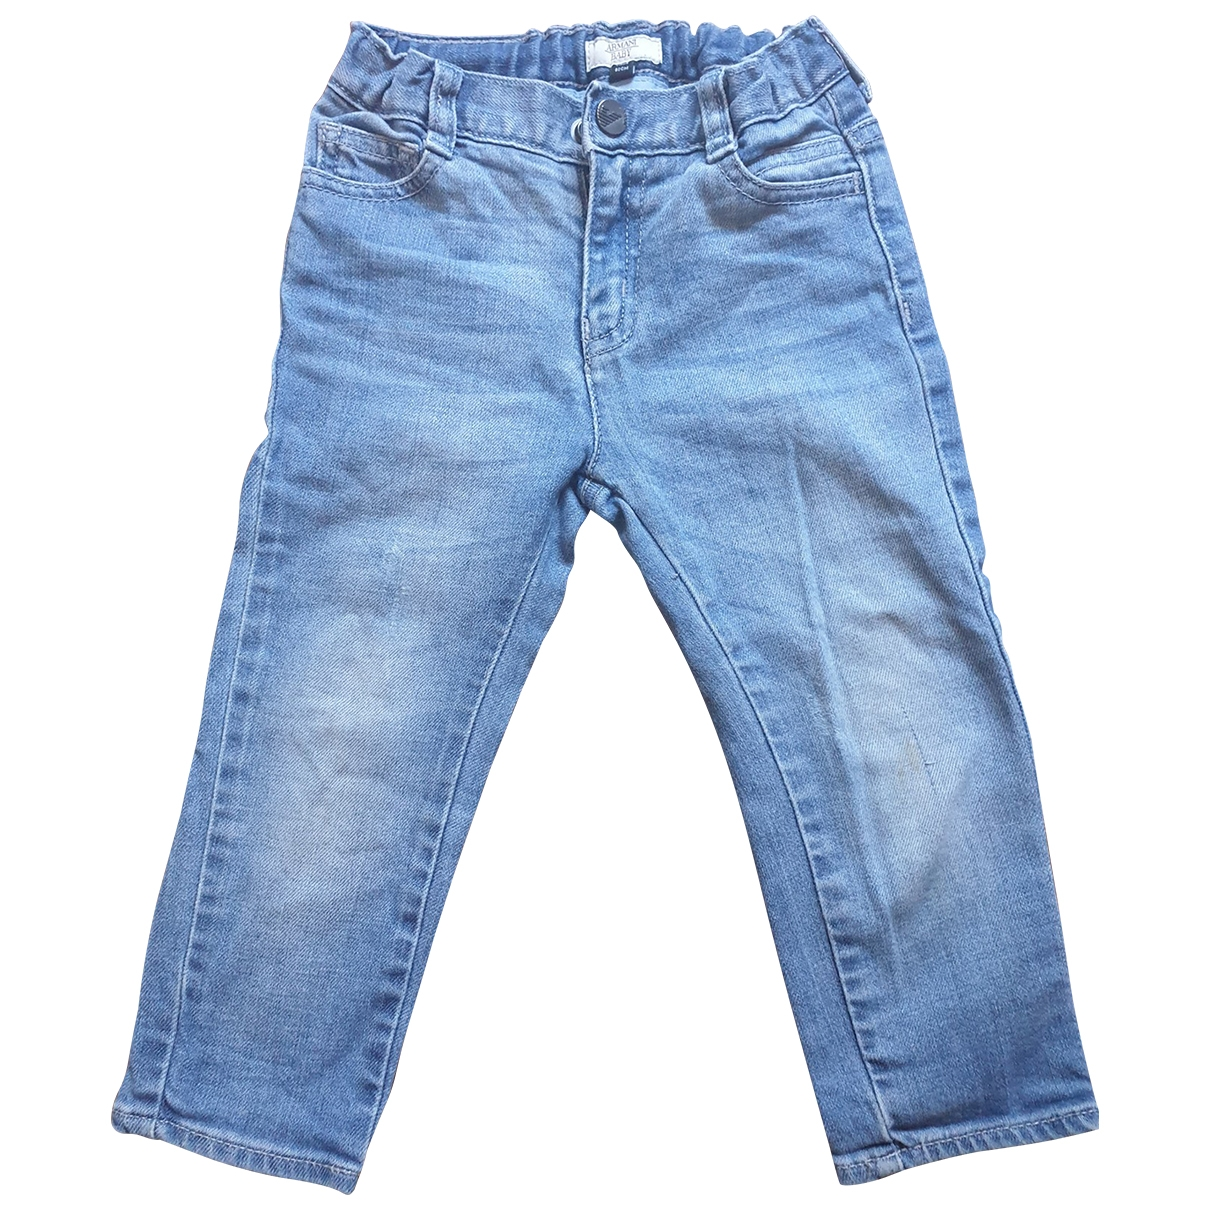 Armani Baby \N Blue Denim - Jeans Trousers for Kids 18 months - up to 81cm FR